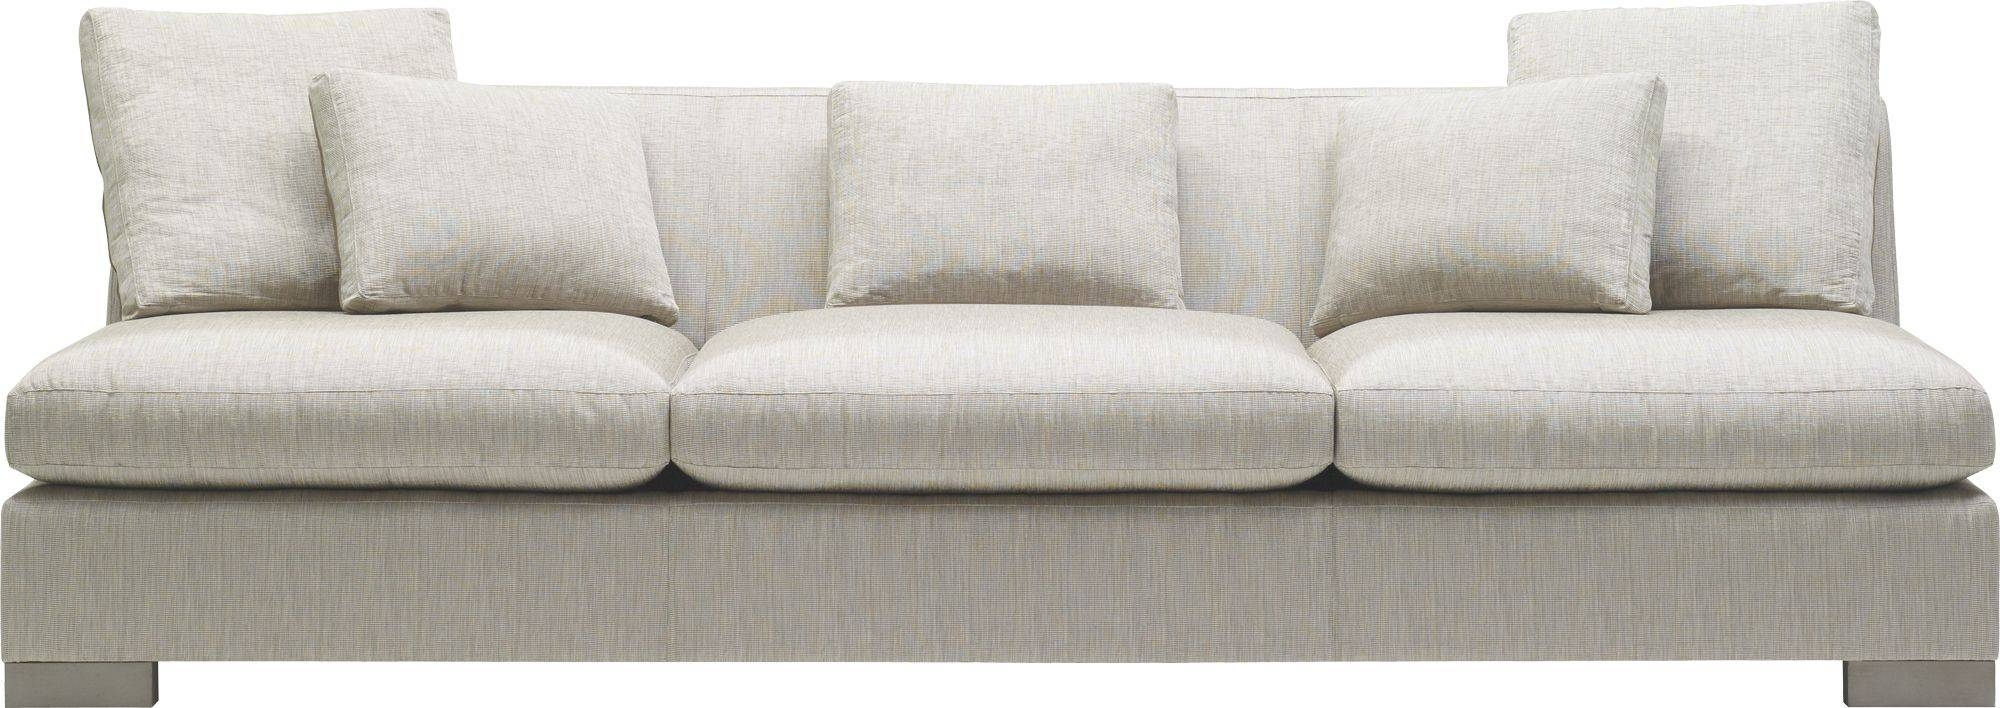 Armless Sofa Gabby Julia Armless Sofa Gray Zulu Feather Modern Room Furniture Woodbridge Home